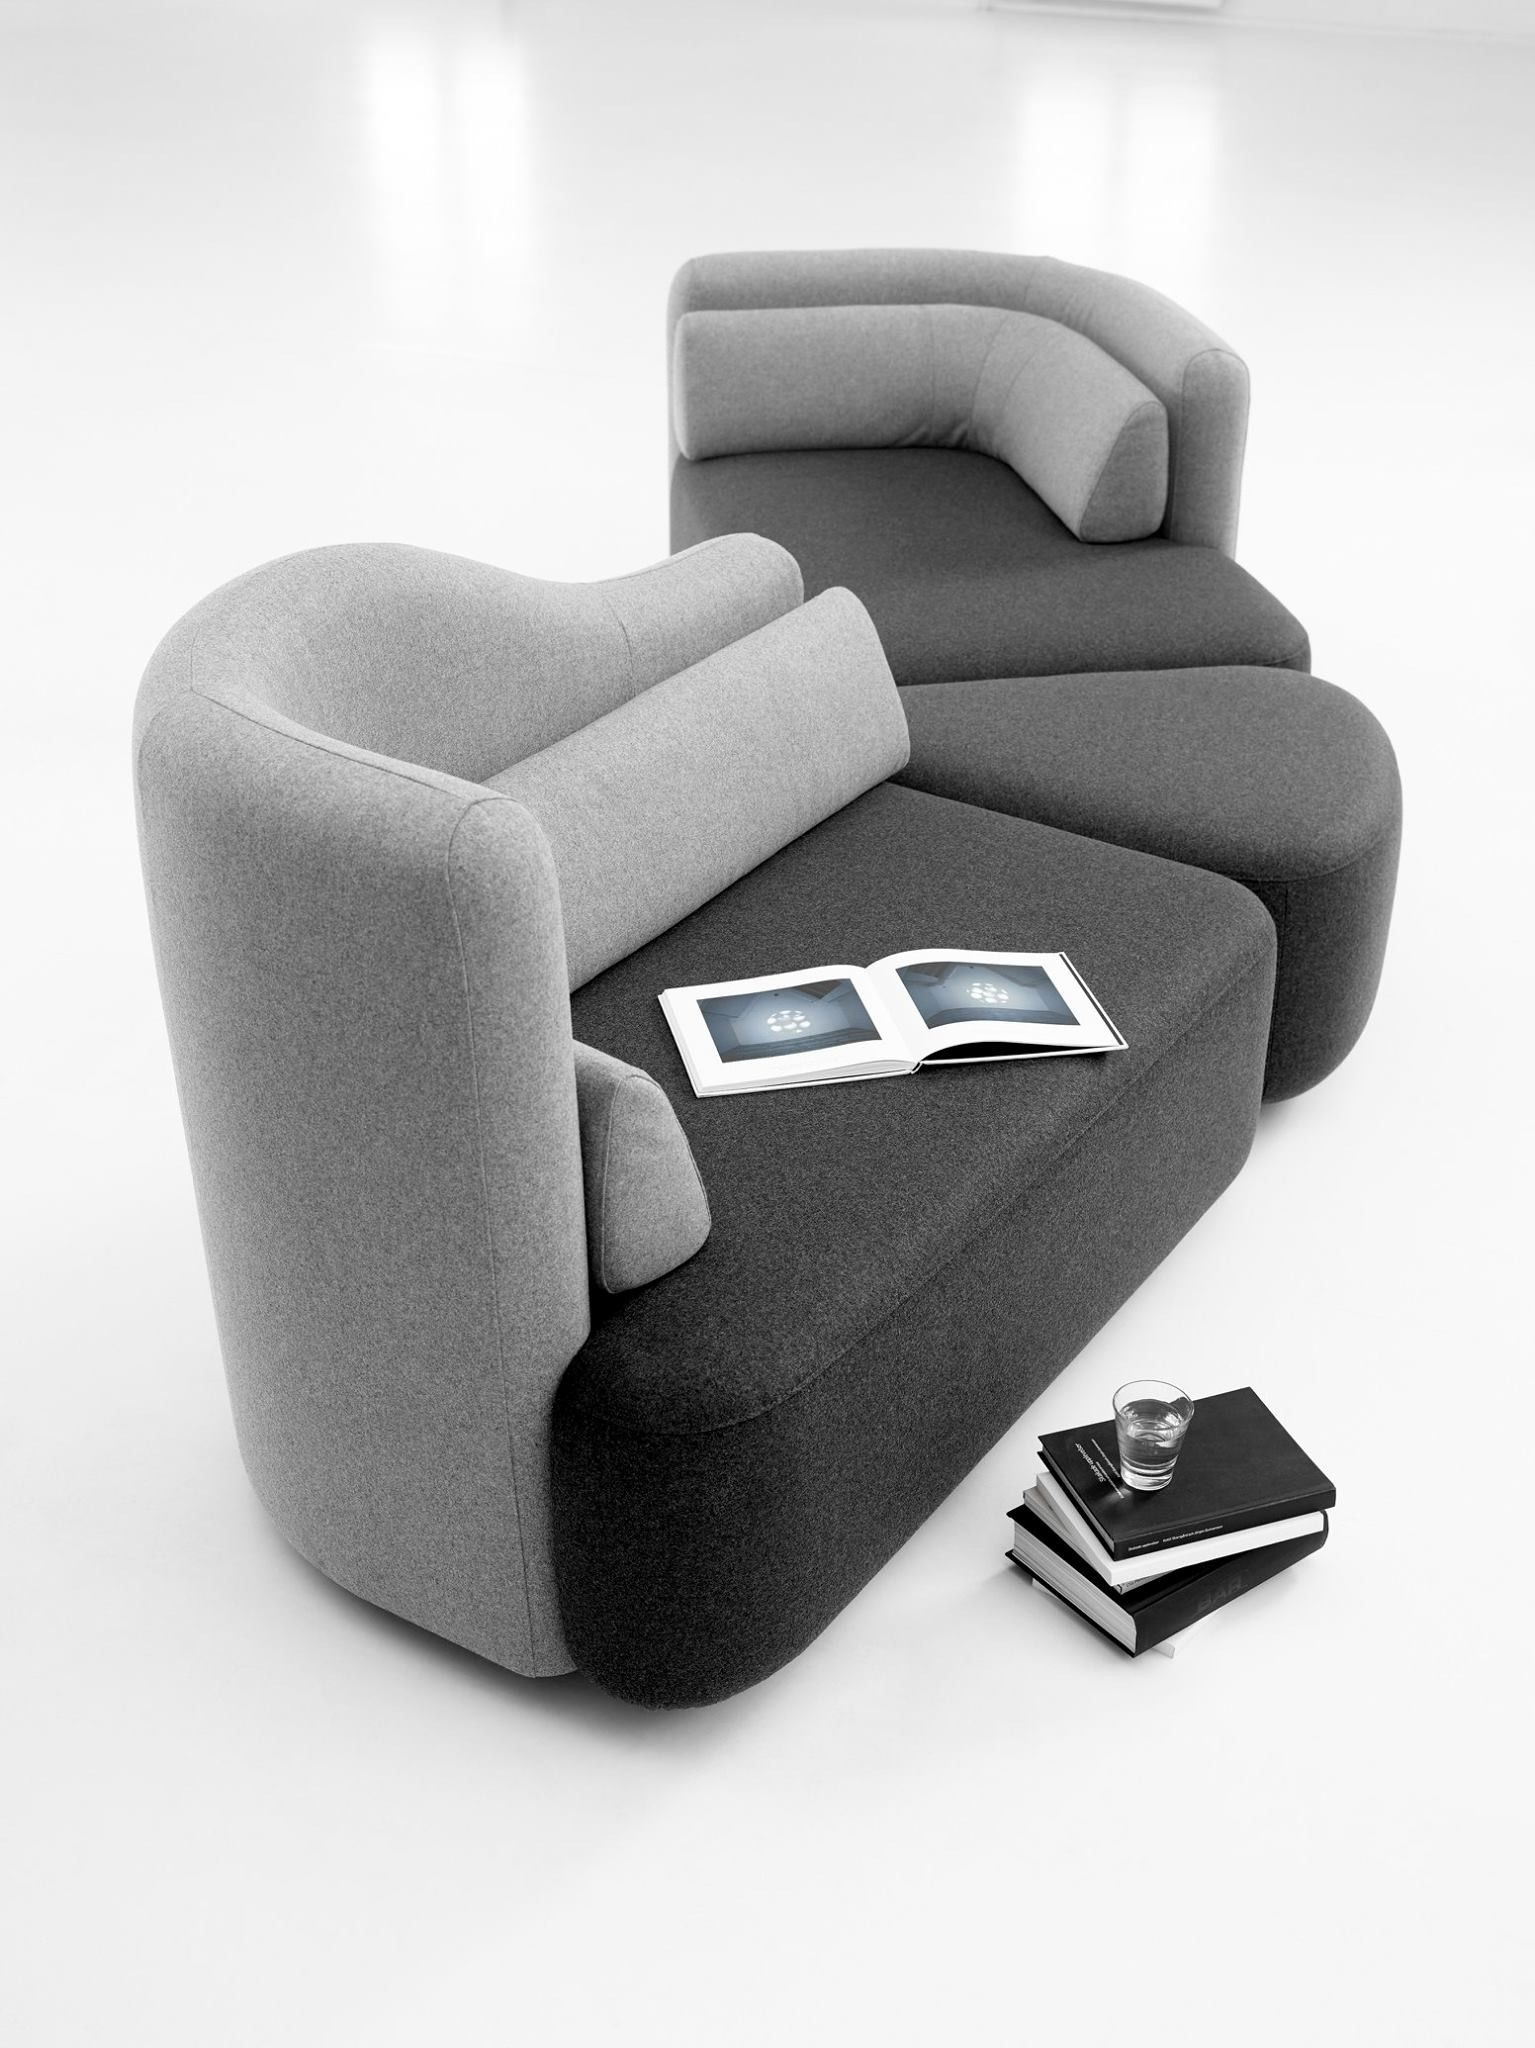 Karim Rashid Boconcept Modular Sofa Ottawa Urban Design Cool Furniture